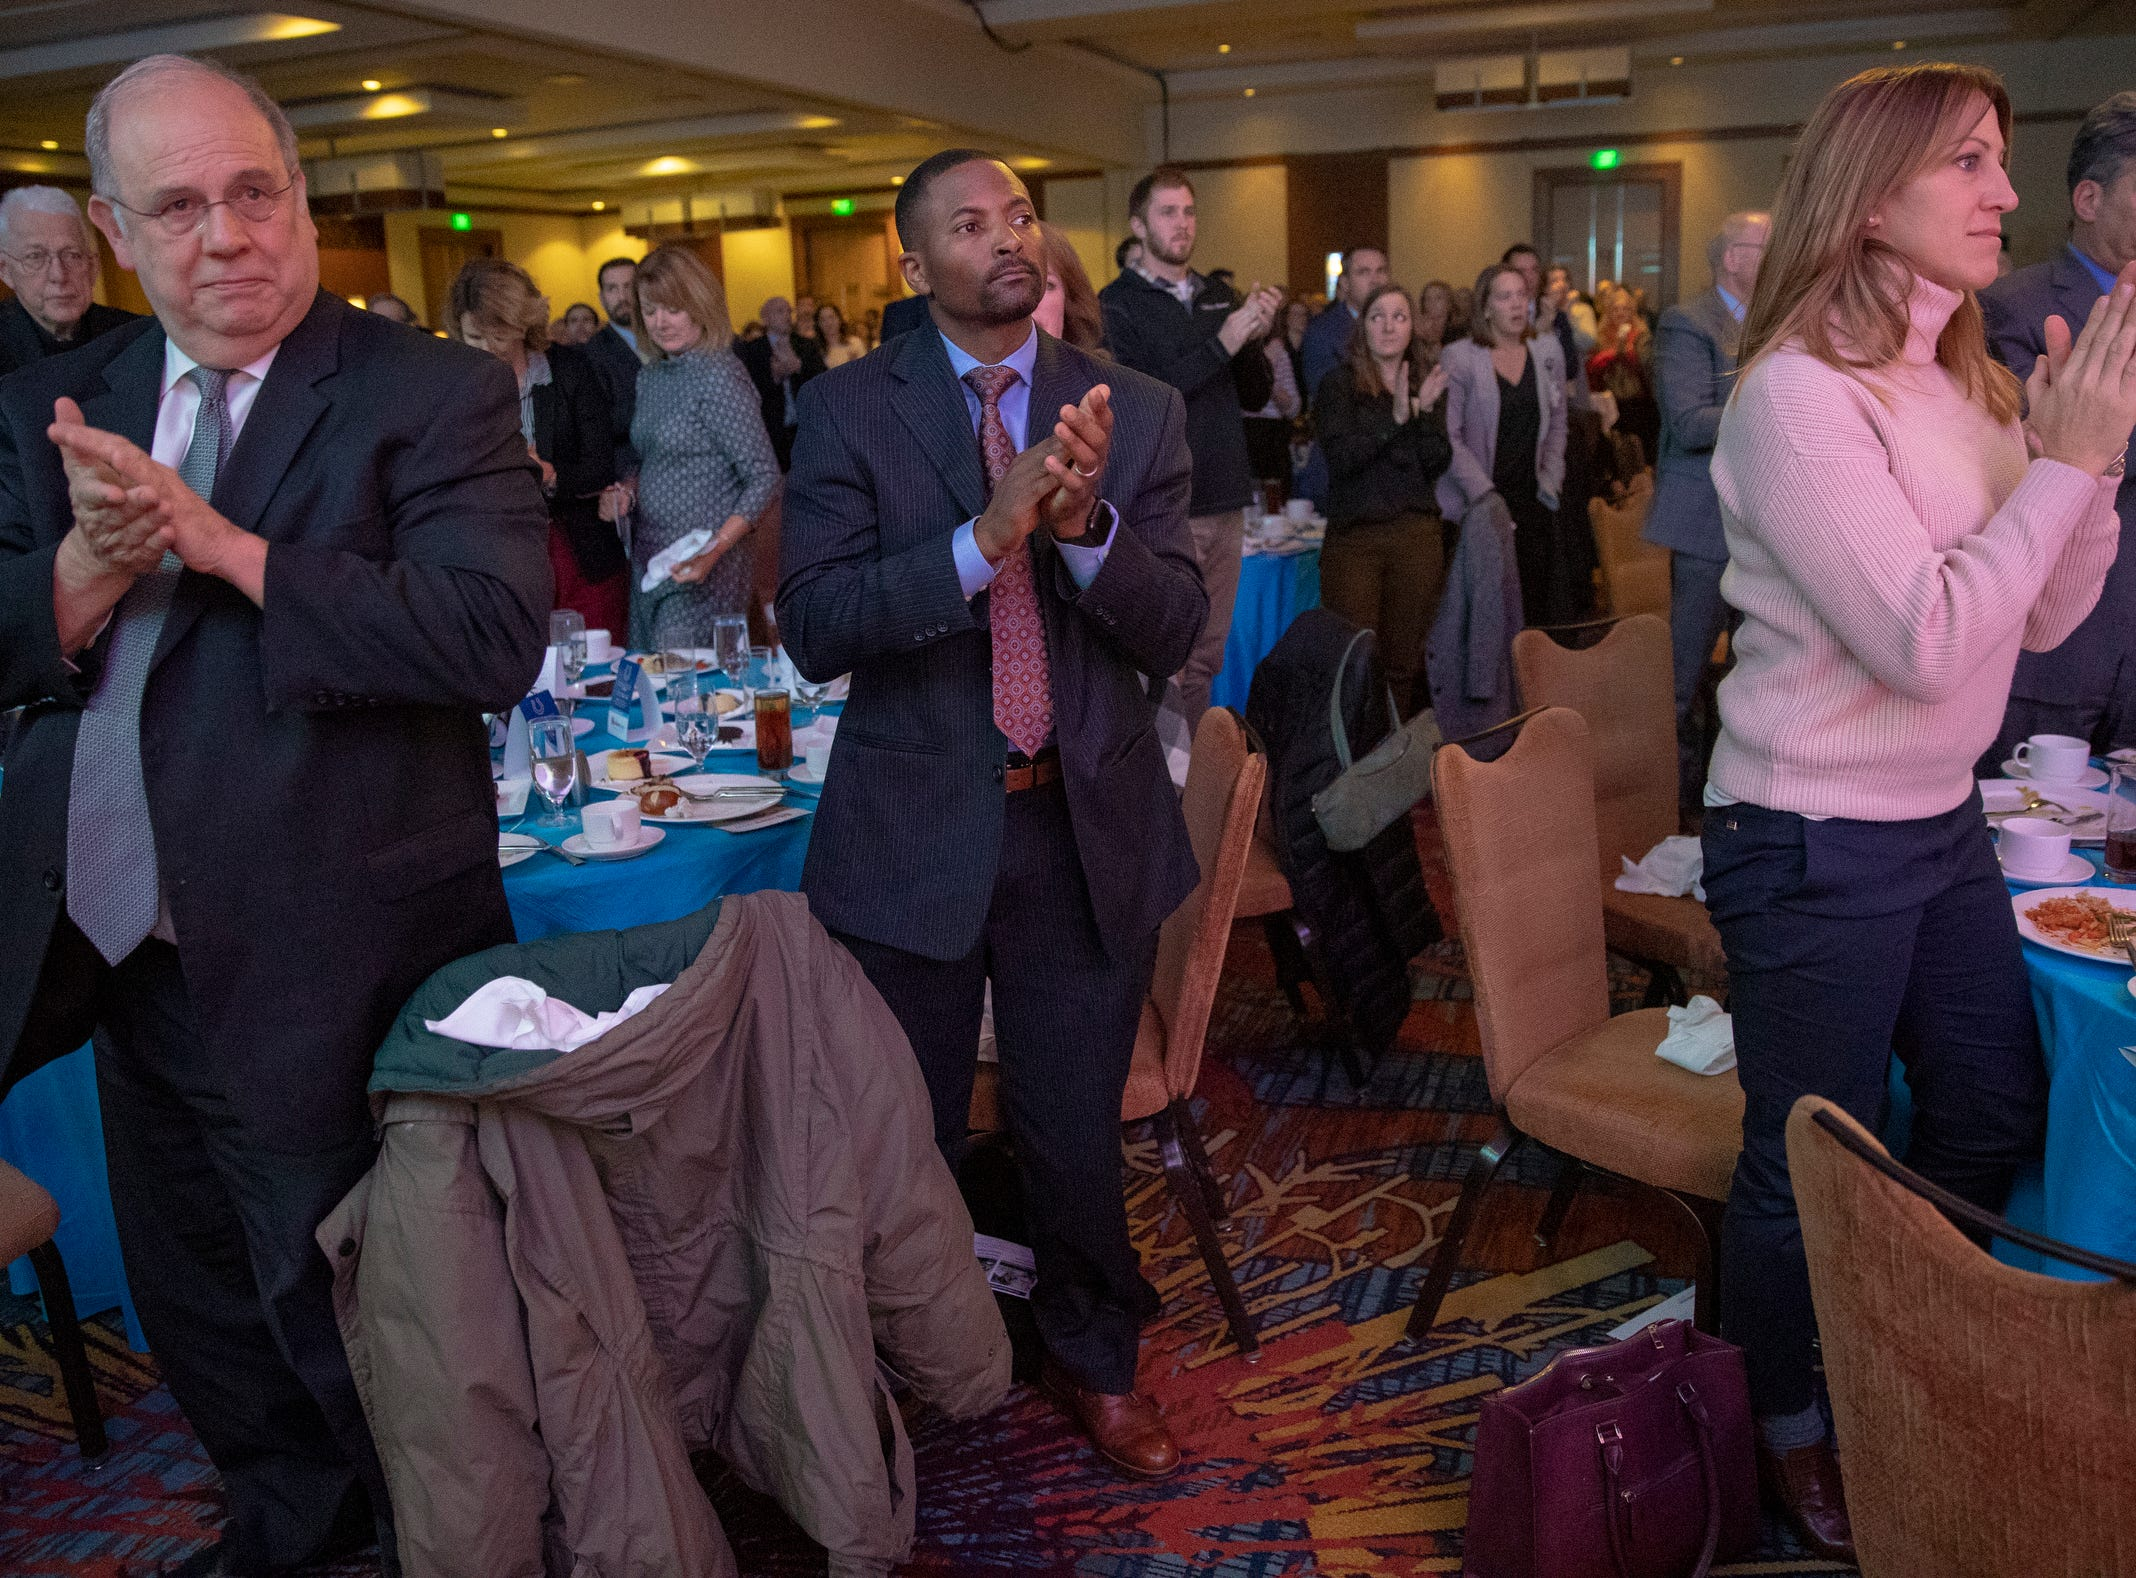 Audience members applaud at a fundraiser luncheon for Riley Children's Foundation's Be The Hope Now campaign, Indianapolis, Wednesday, Nov. 28, 2018. The charity has raised $121,487,.657 as of luncheon time.